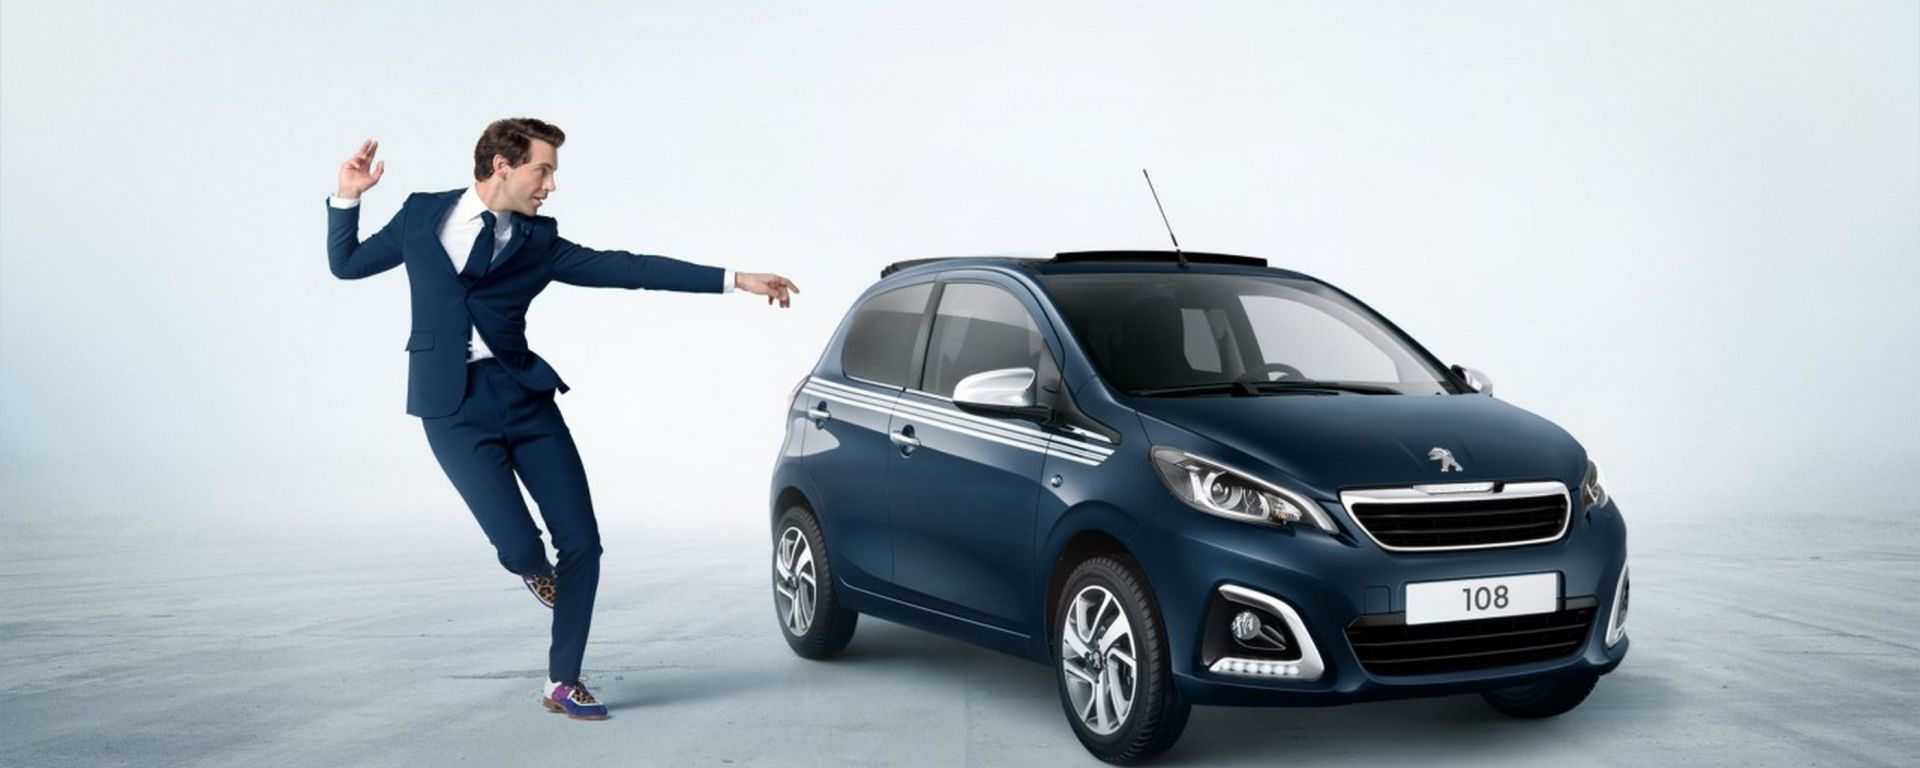 Peugeot 108 Collection: la collaborazione con Mika ha dato vita a una versione speciale